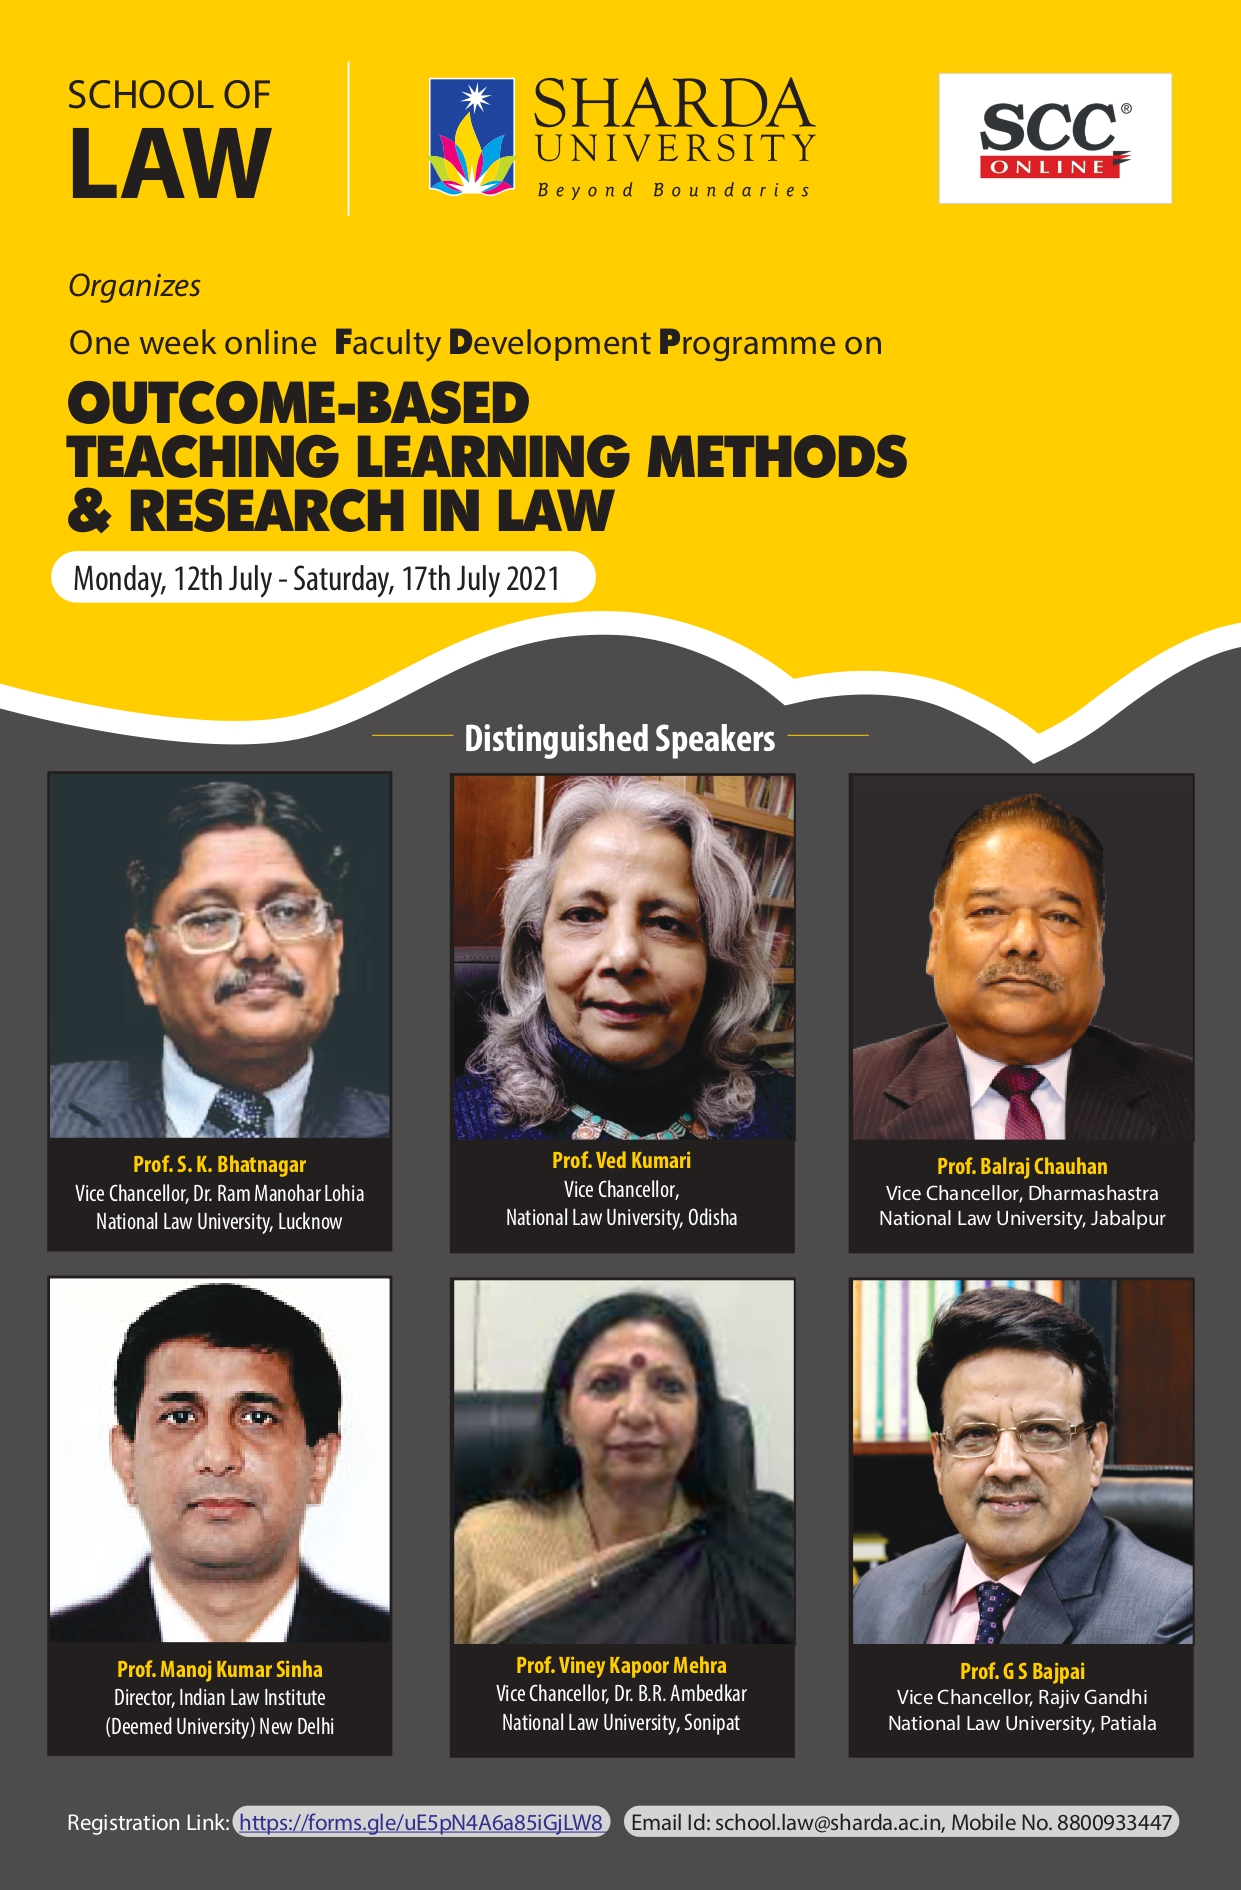 ONE WEEK ONLINE FACULTY DEVELOPMENT PROGRAMME ON OUTCOME-BASED TEACHING-LEARNING METHODS & RESEARCH IN LAW: THE WAY FORWARD